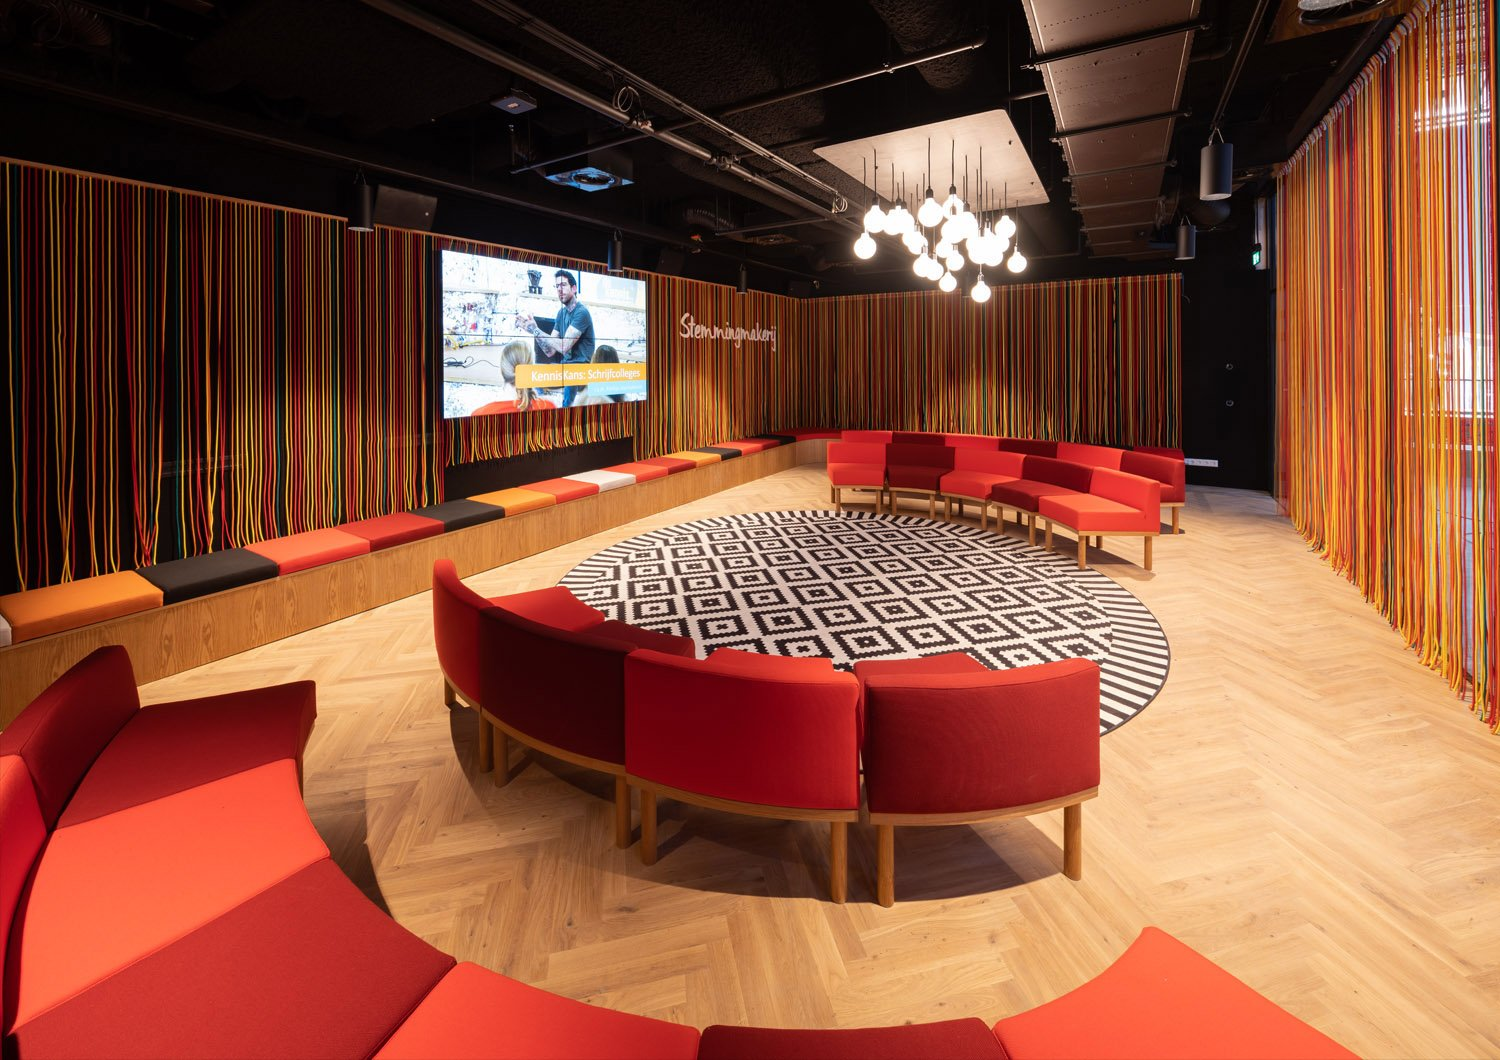 In this enclosed space, there is room for sixty people during meet-ups, shake-ups, presentations or workshops. Ossip van Duivenbode